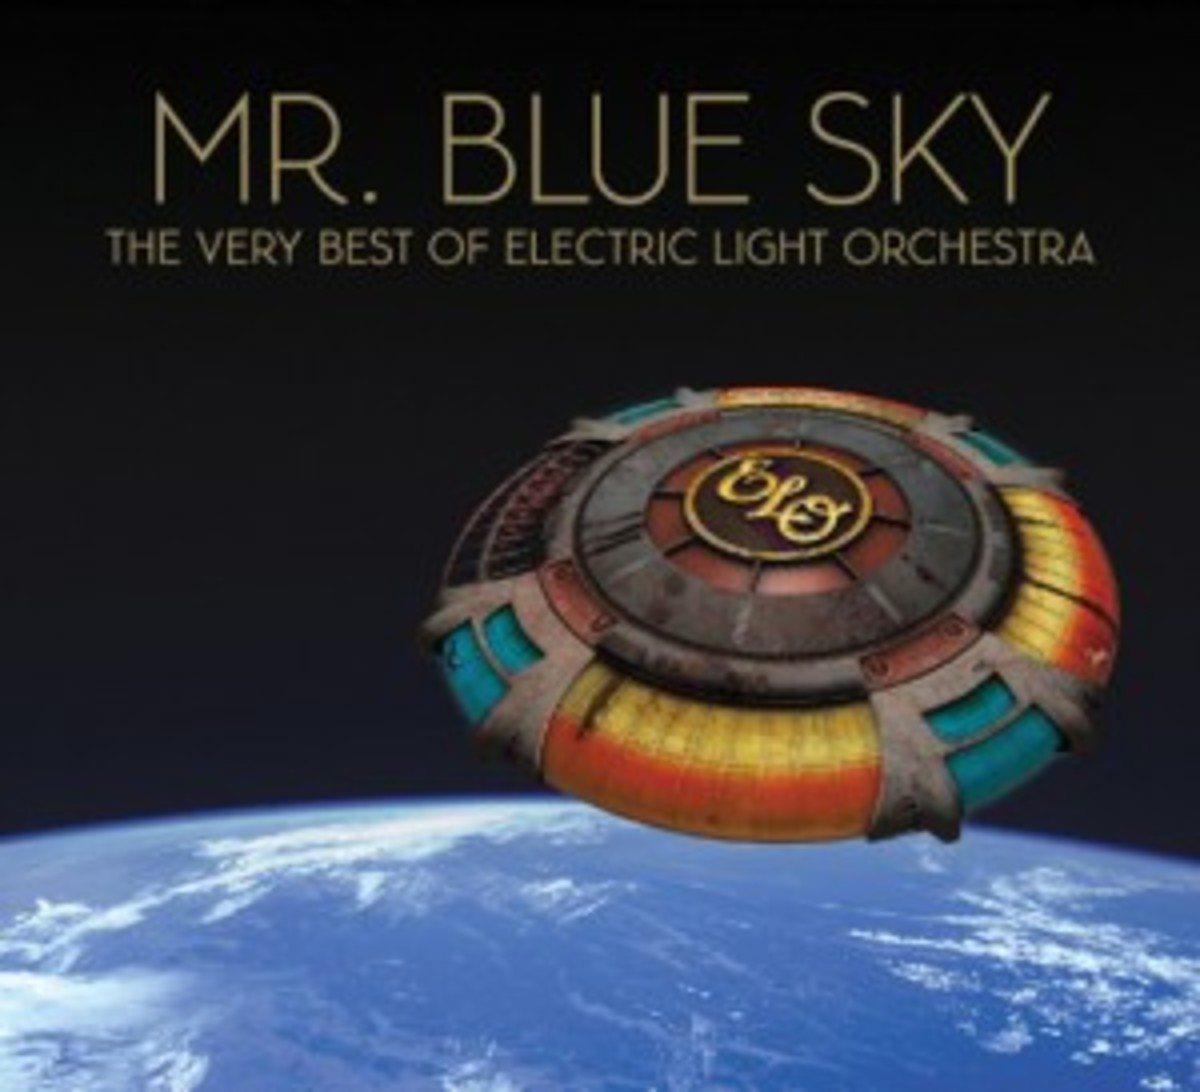 Electric Light Orchestra Mr. Blue Sky